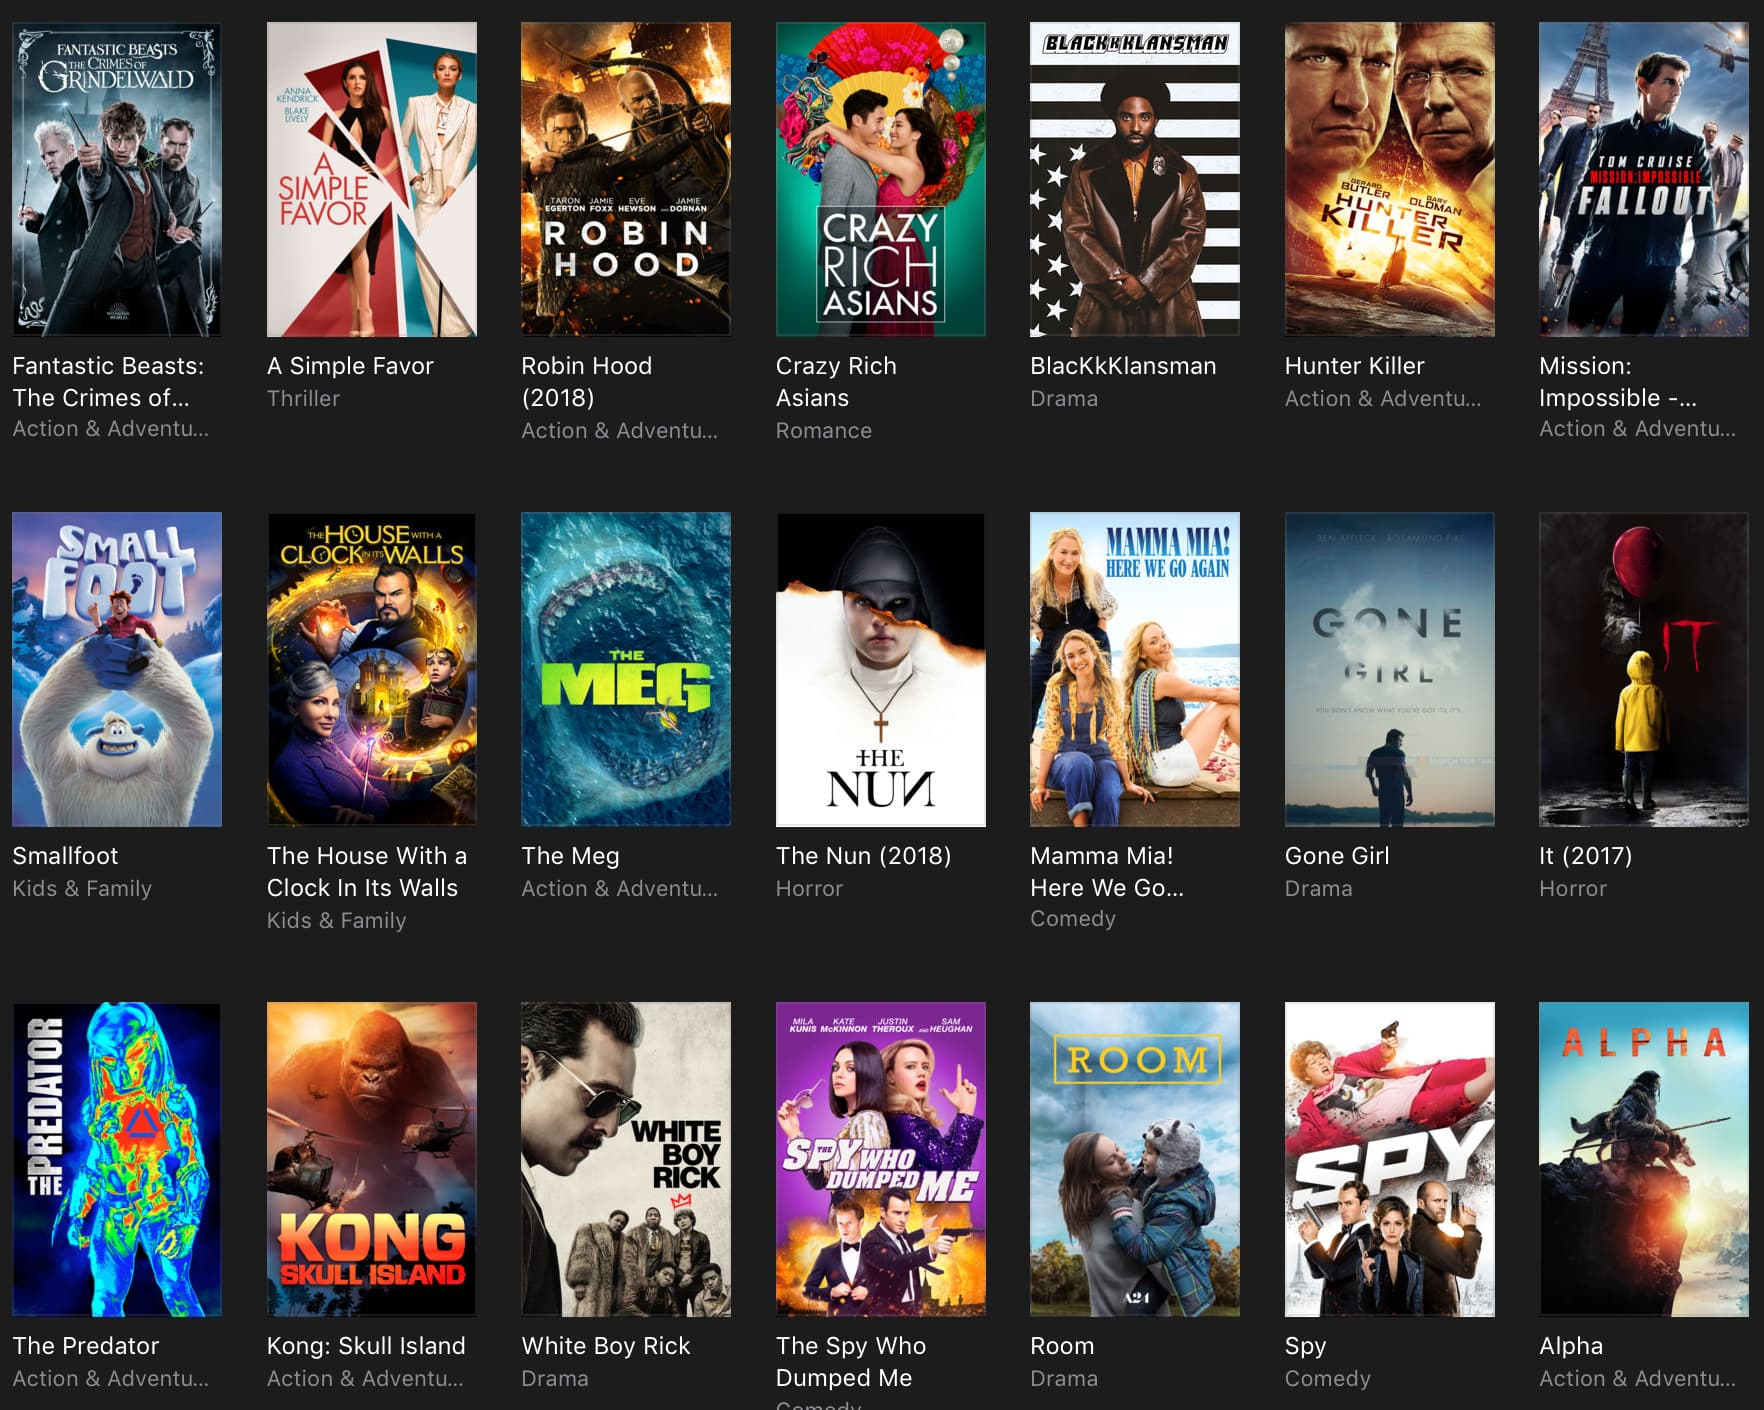 iTunes movie deals: $10 recent hits in 4K HDR, $5 iconic indie films, $15 triple features and more